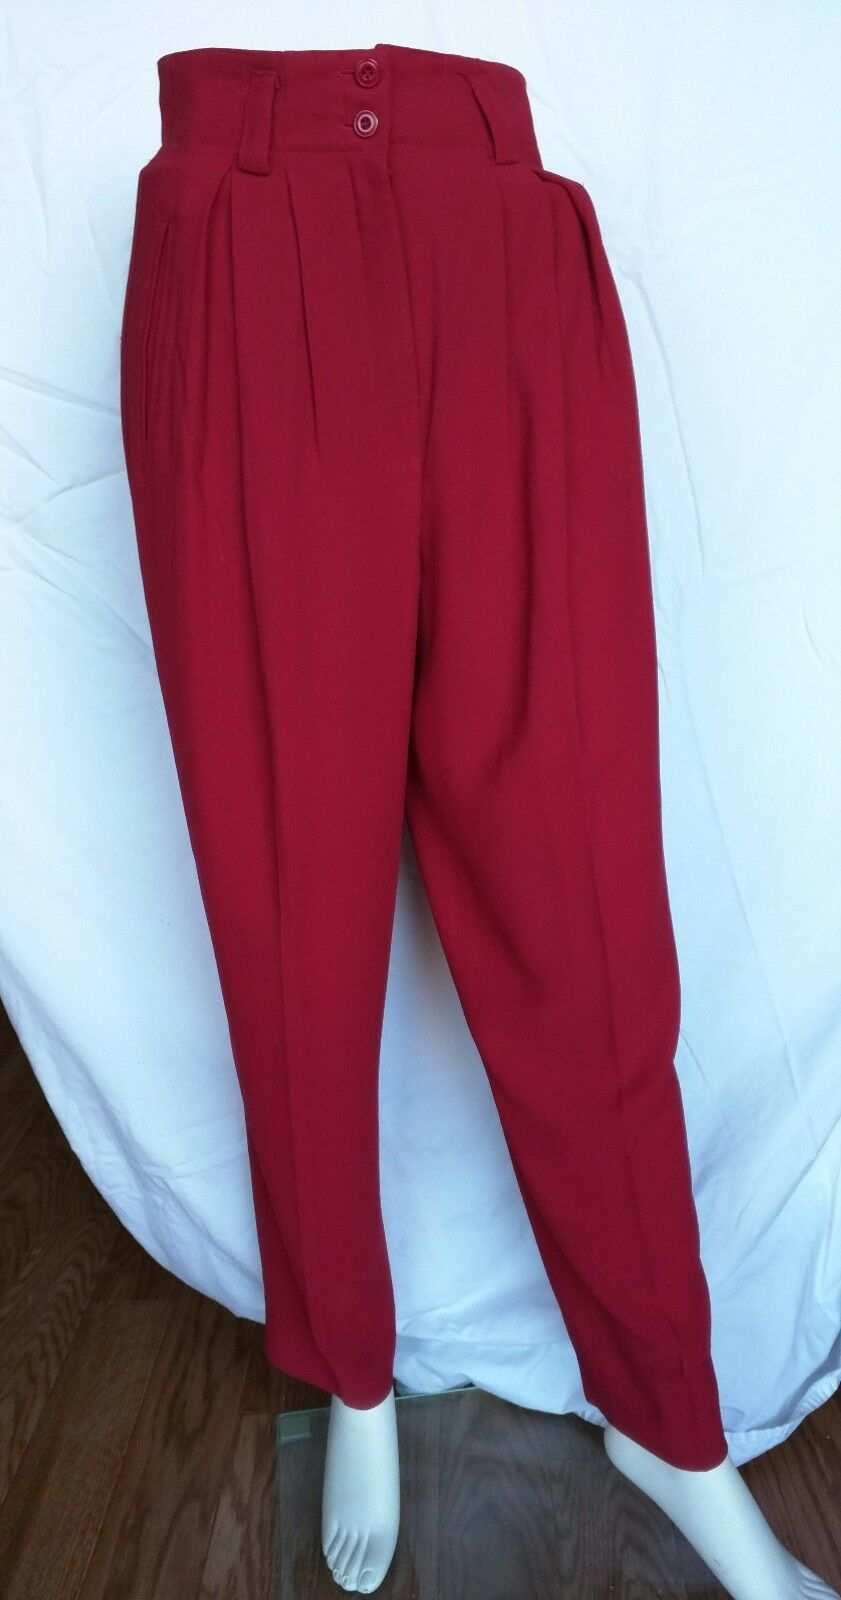 Ann Tjian for Kenar Petites Ladies Burgundy Pants Sz 8